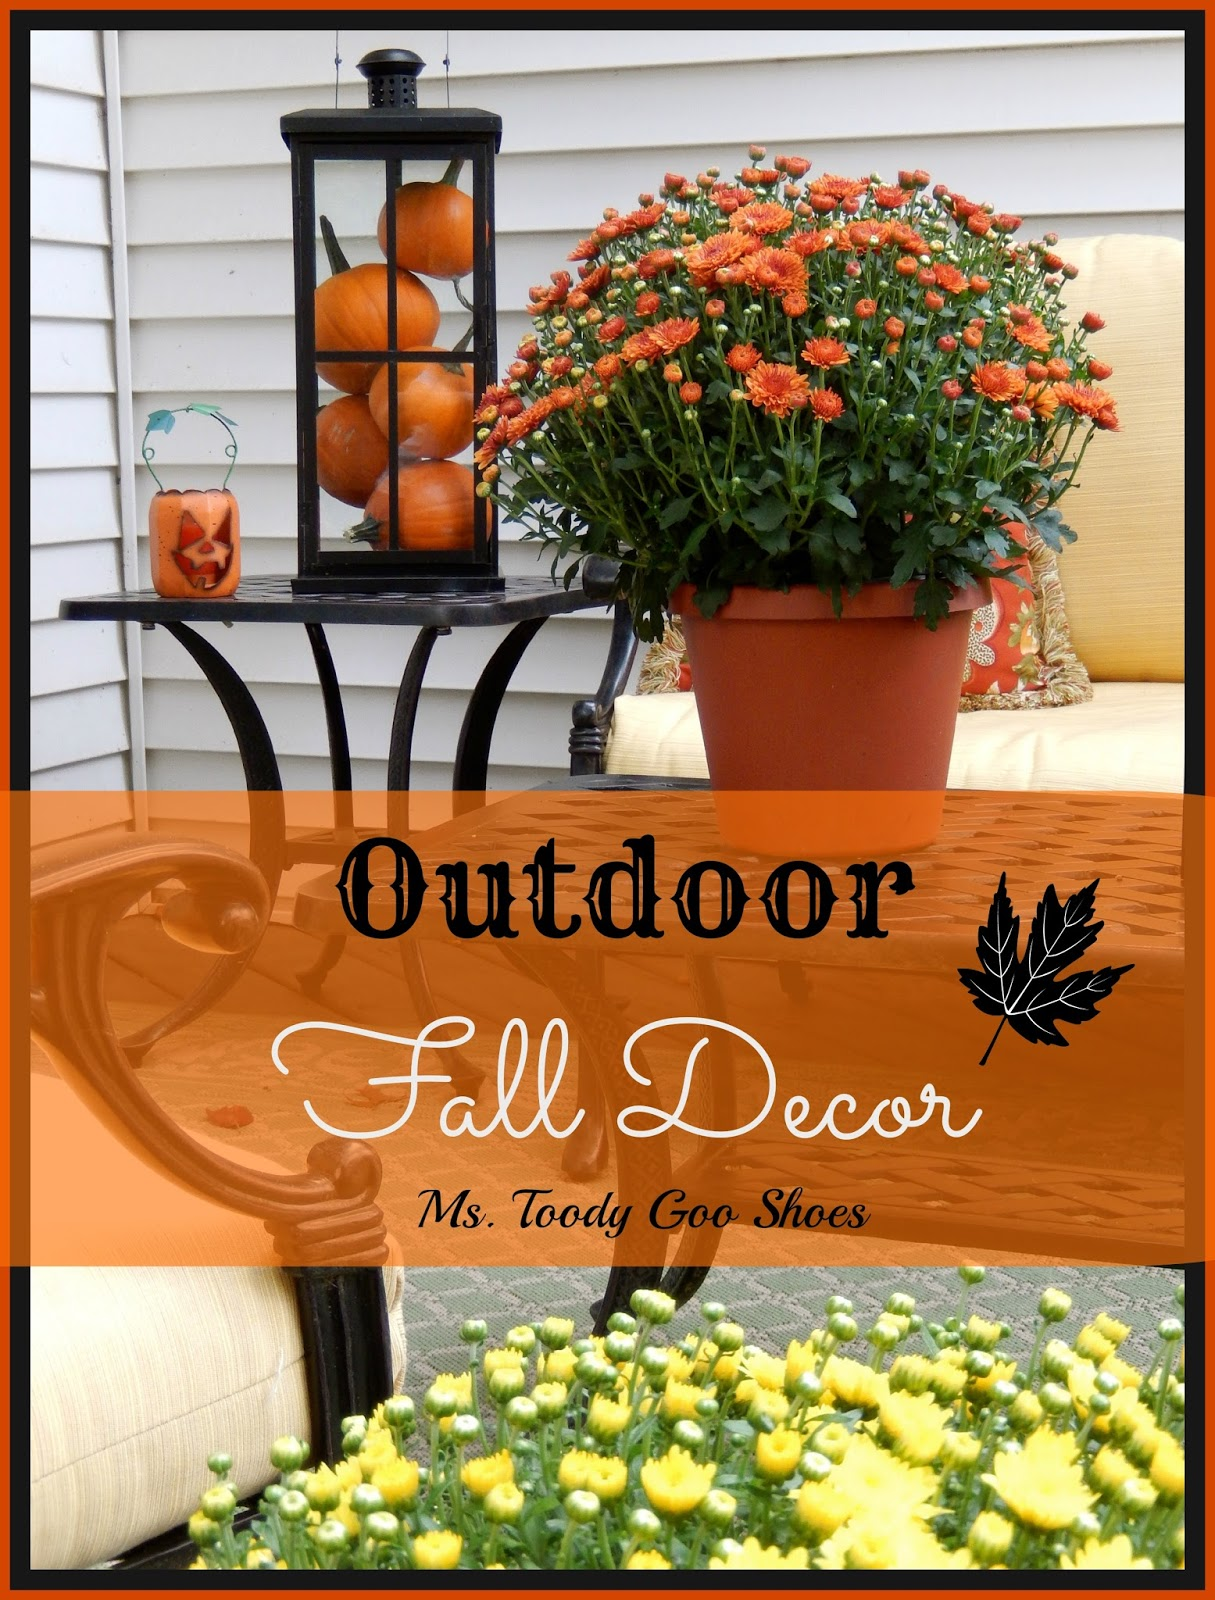 Outdoor Fall Decor (Ms. Toody Goo Shoes)